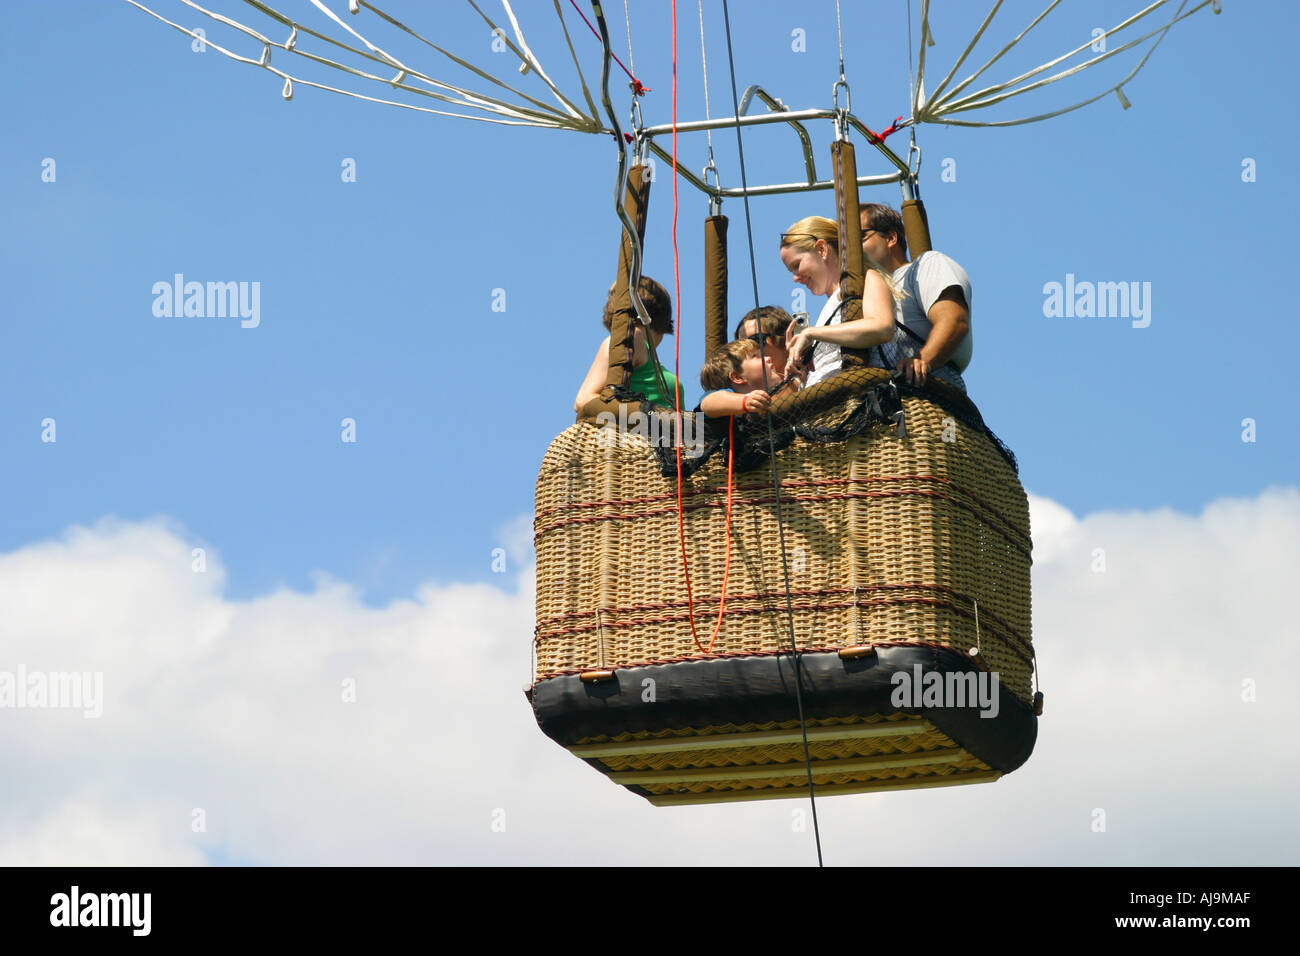 People in Hot air balloon basket in the sky Stock Photo